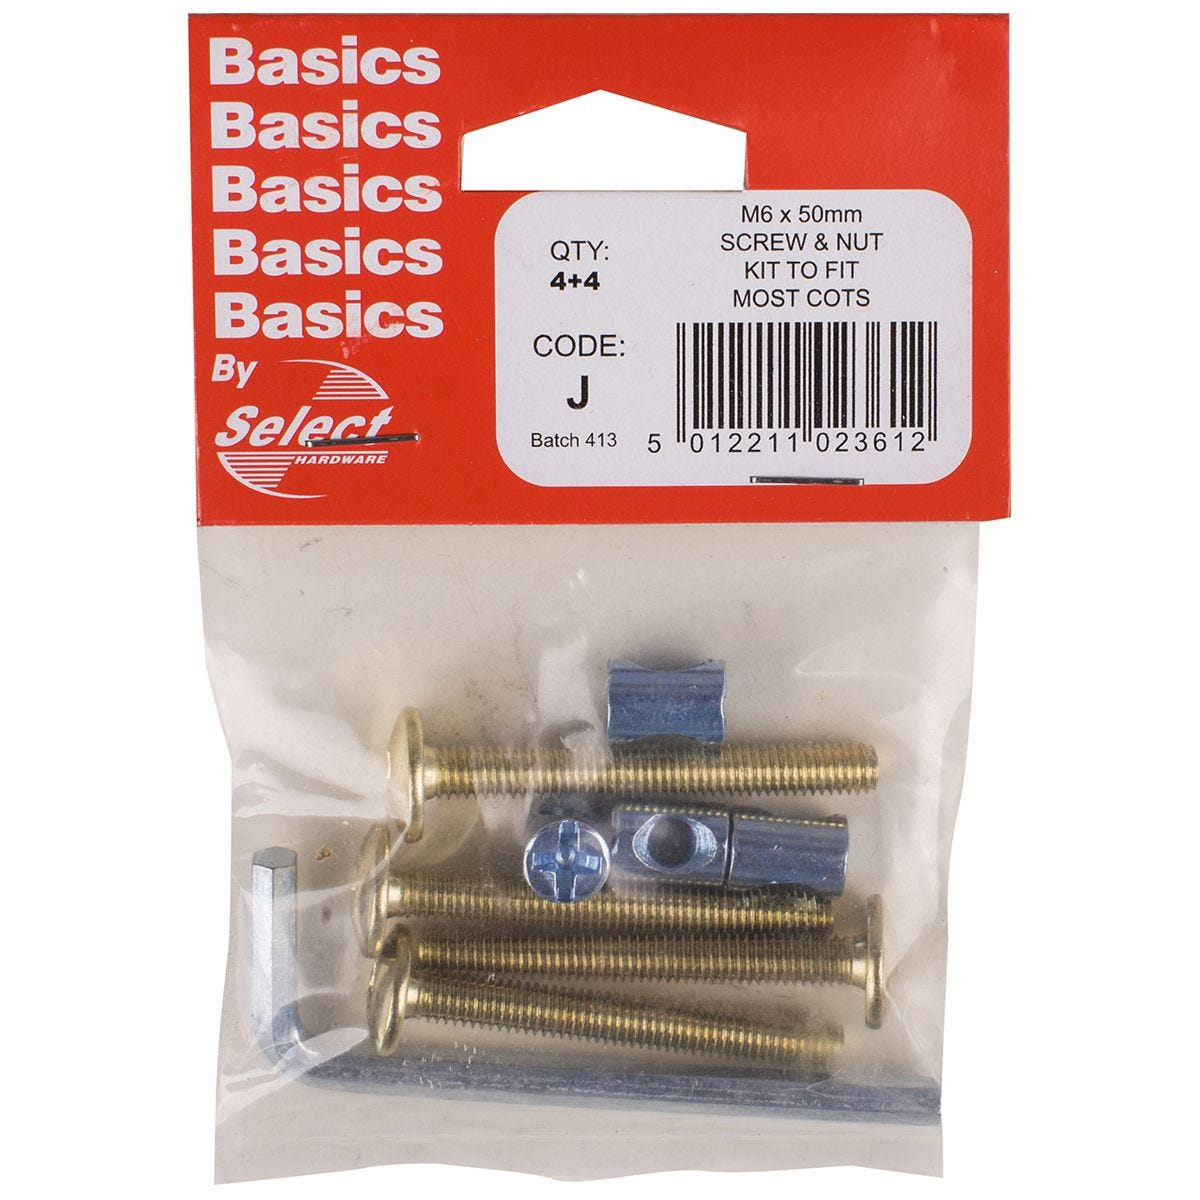 Select Hardware Bunk Bed Bolts Inc Allen Key Electro Brass M6x50mm 4 4 Pack Robert Dyas